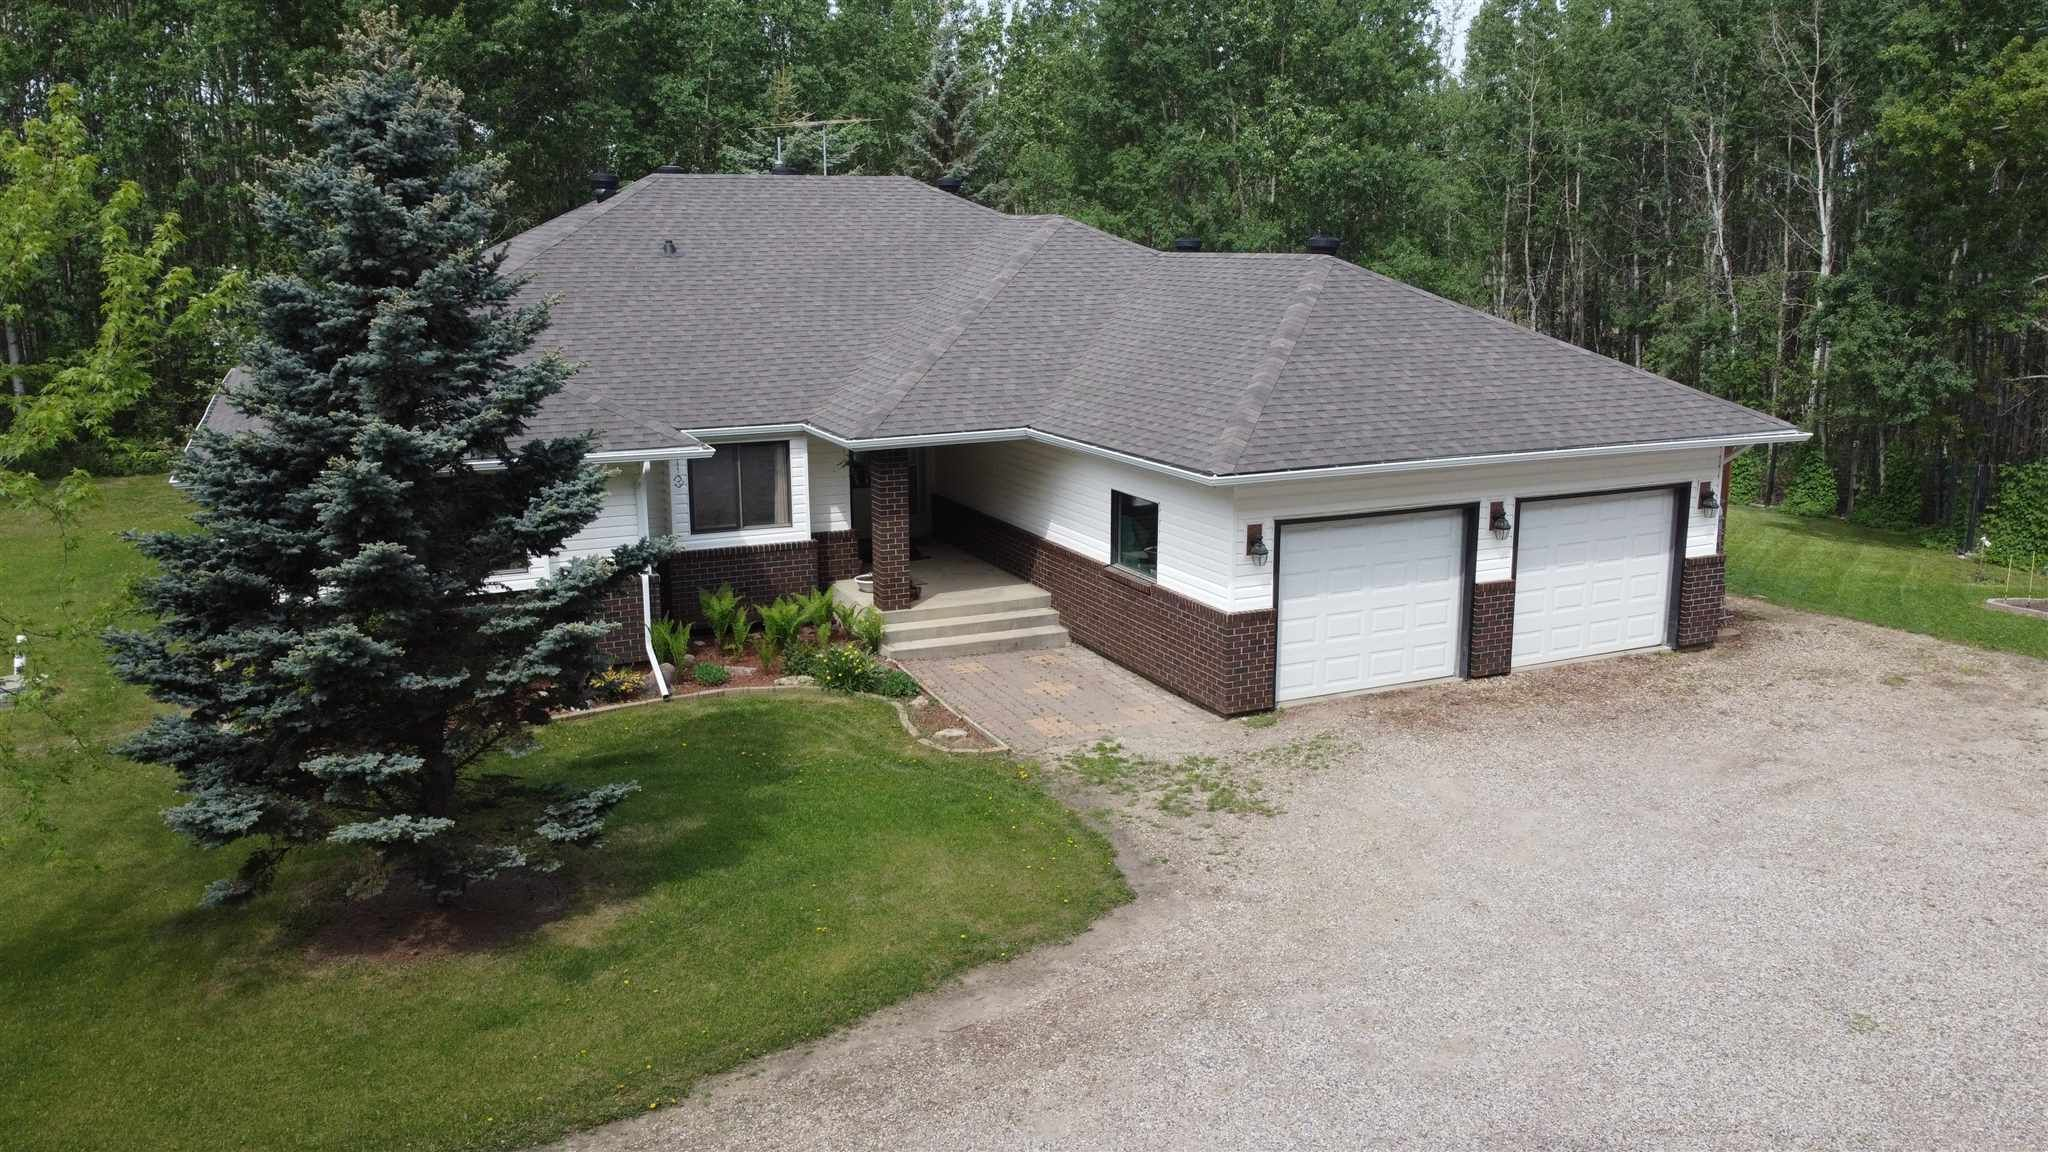 Main Photo: 3 53407 RGE RD 30: Rural Parkland County House for sale : MLS®# E4247976